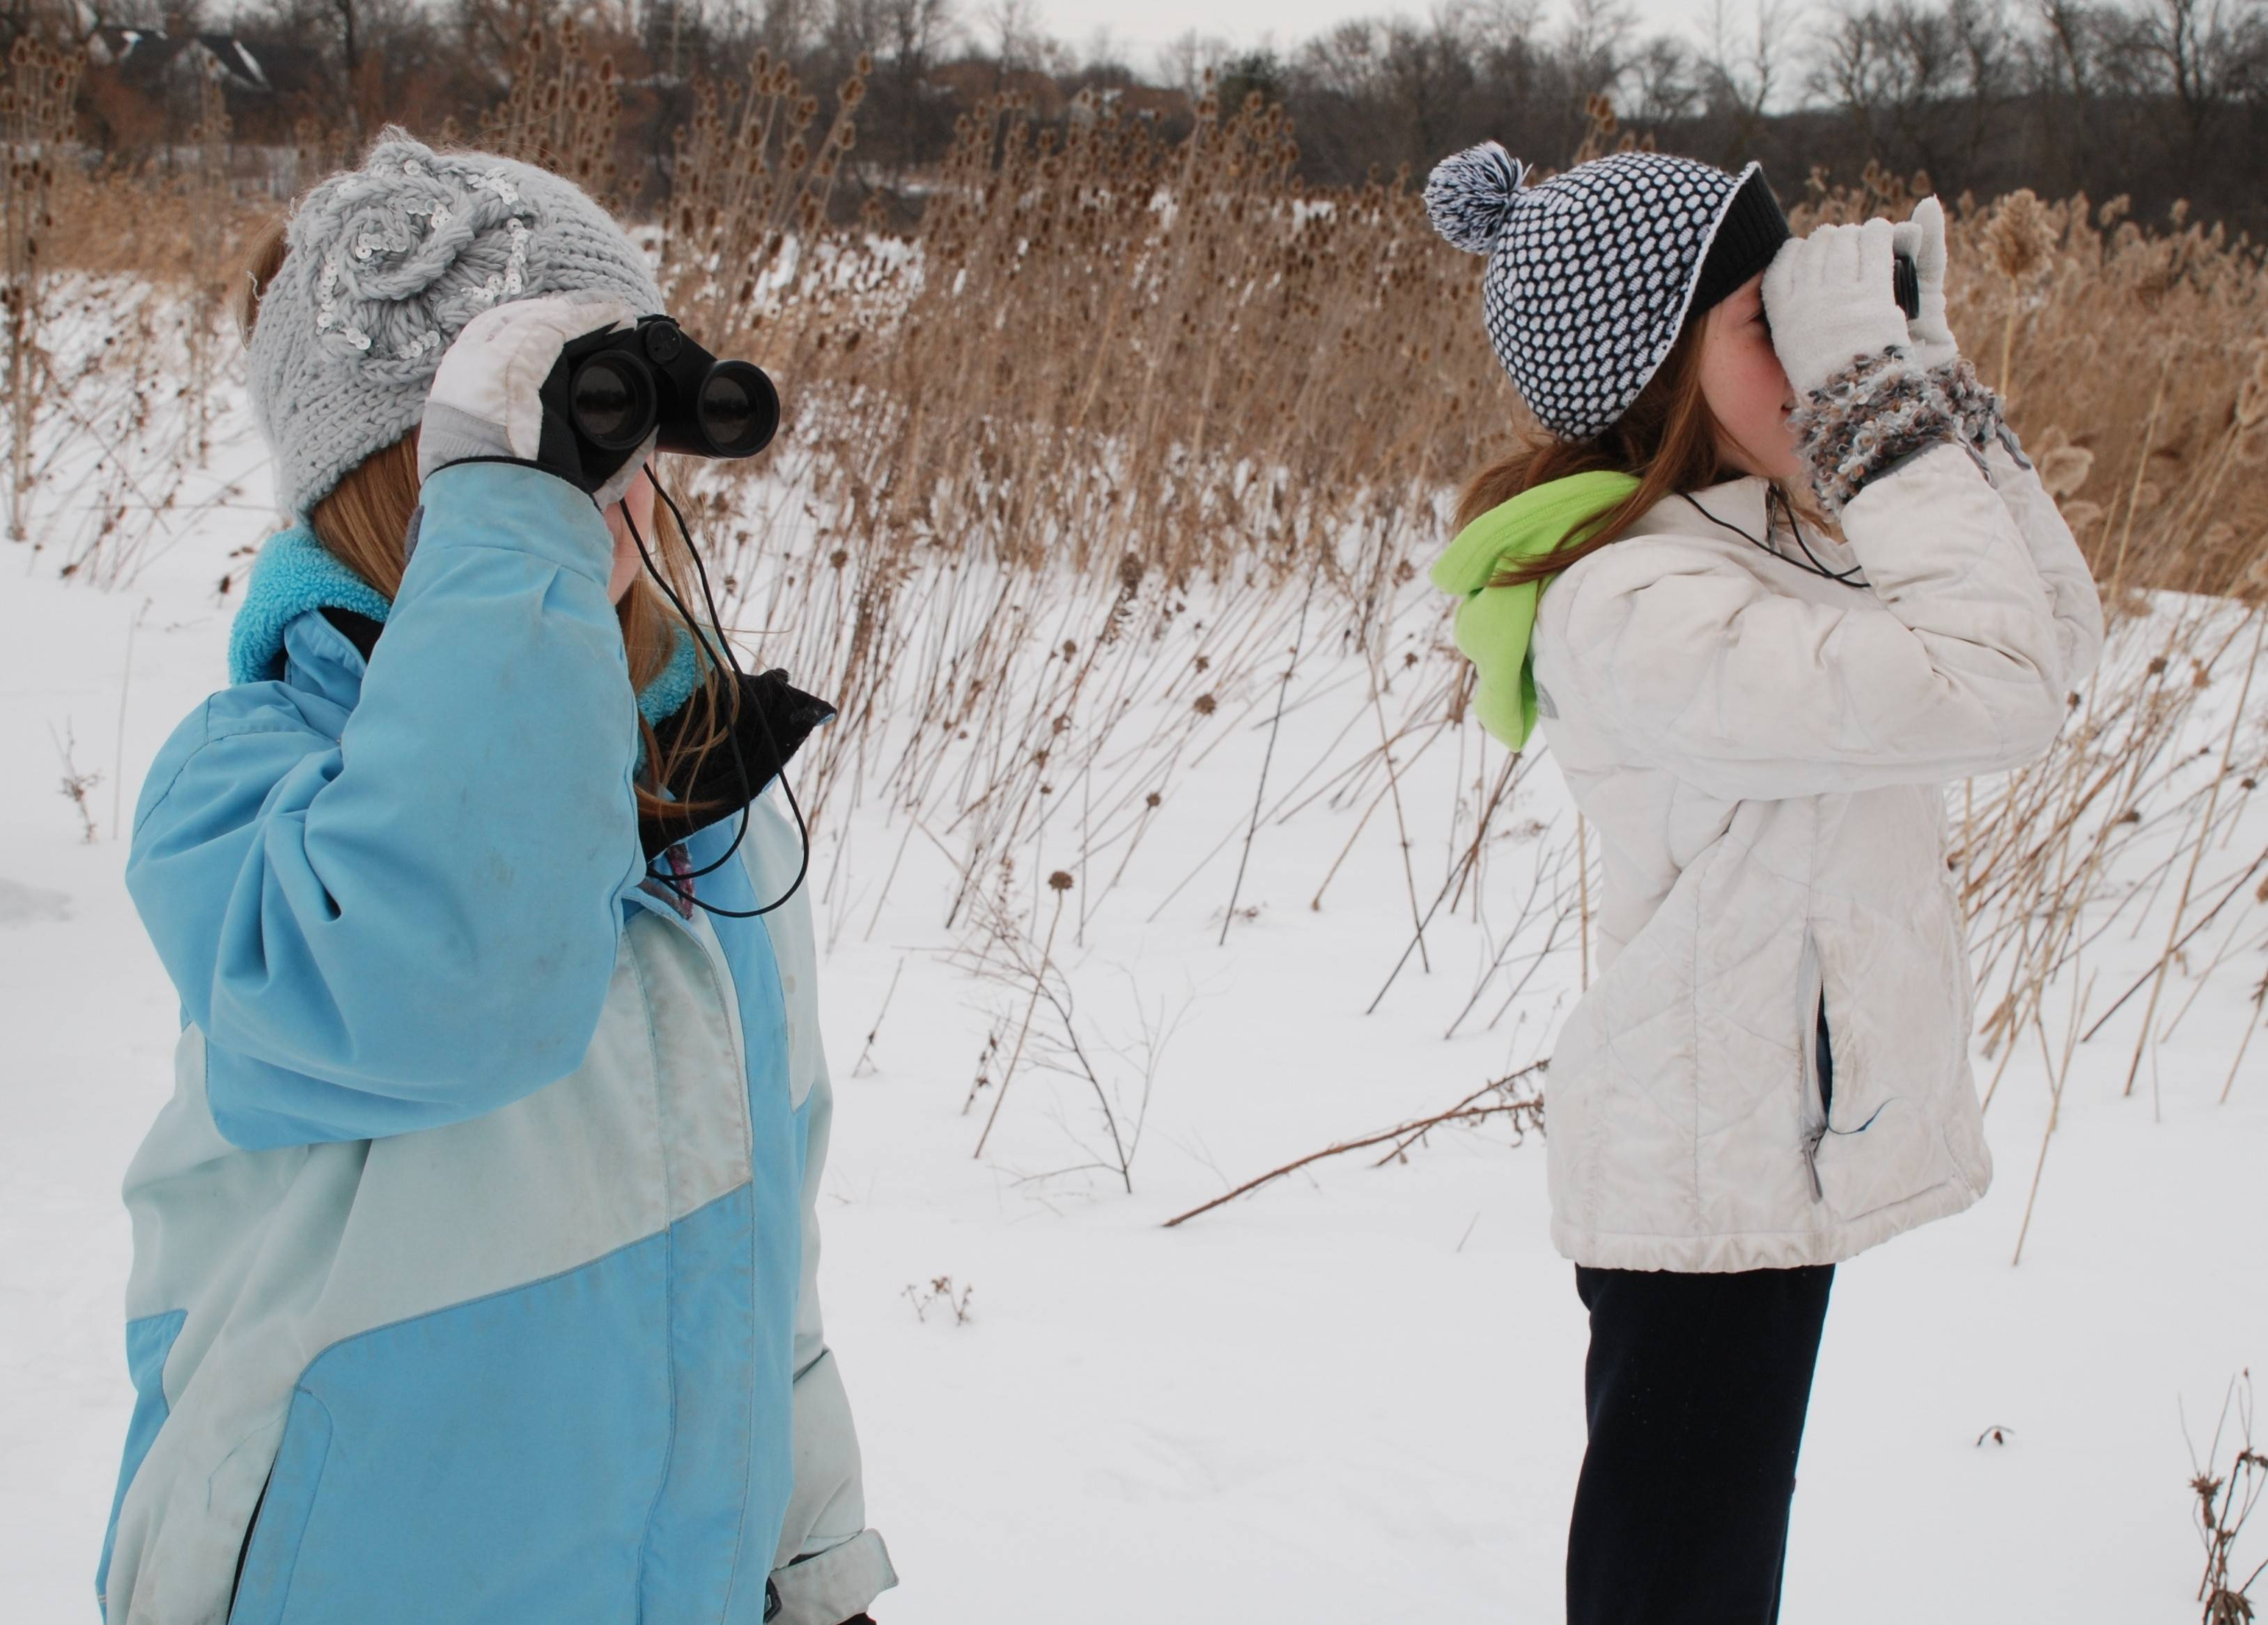 On a blustery Saturday, children brave the cold to help count birds during the 16th annual Great Backyard Bird Count.